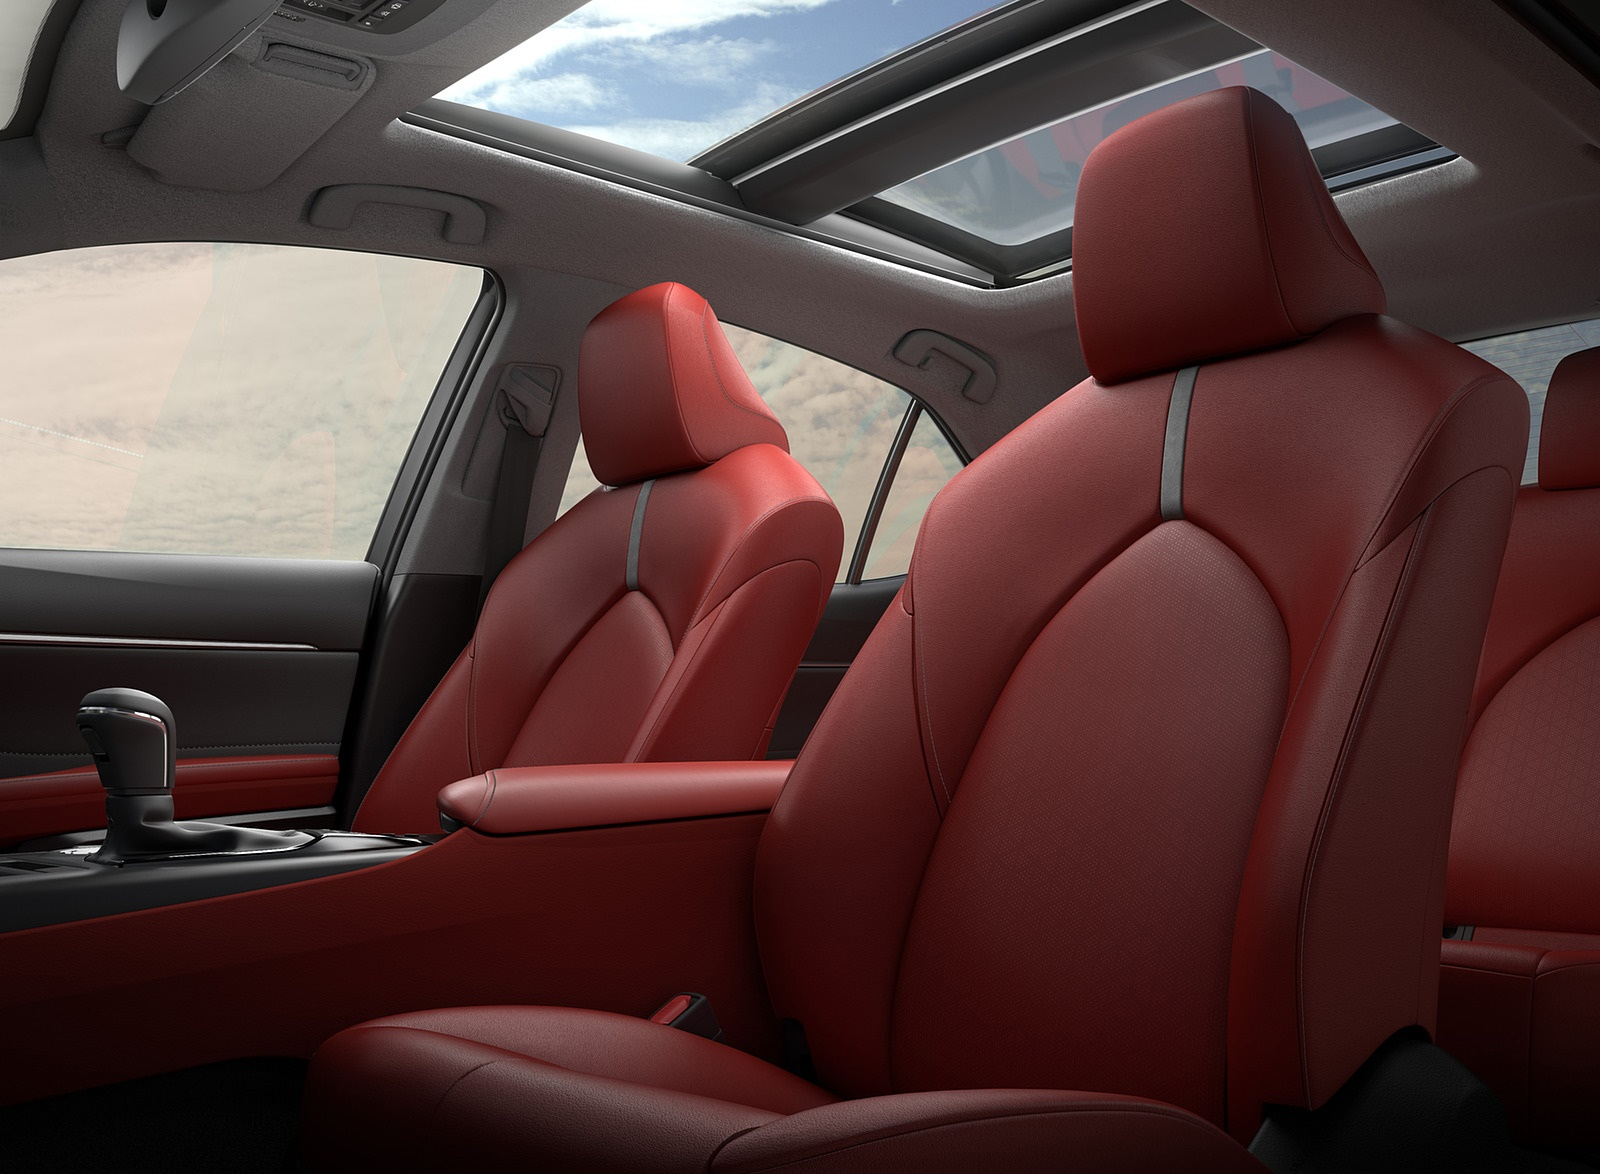 2018 Toyota Camry XSE Panoramic Roof Wallpapers (10)